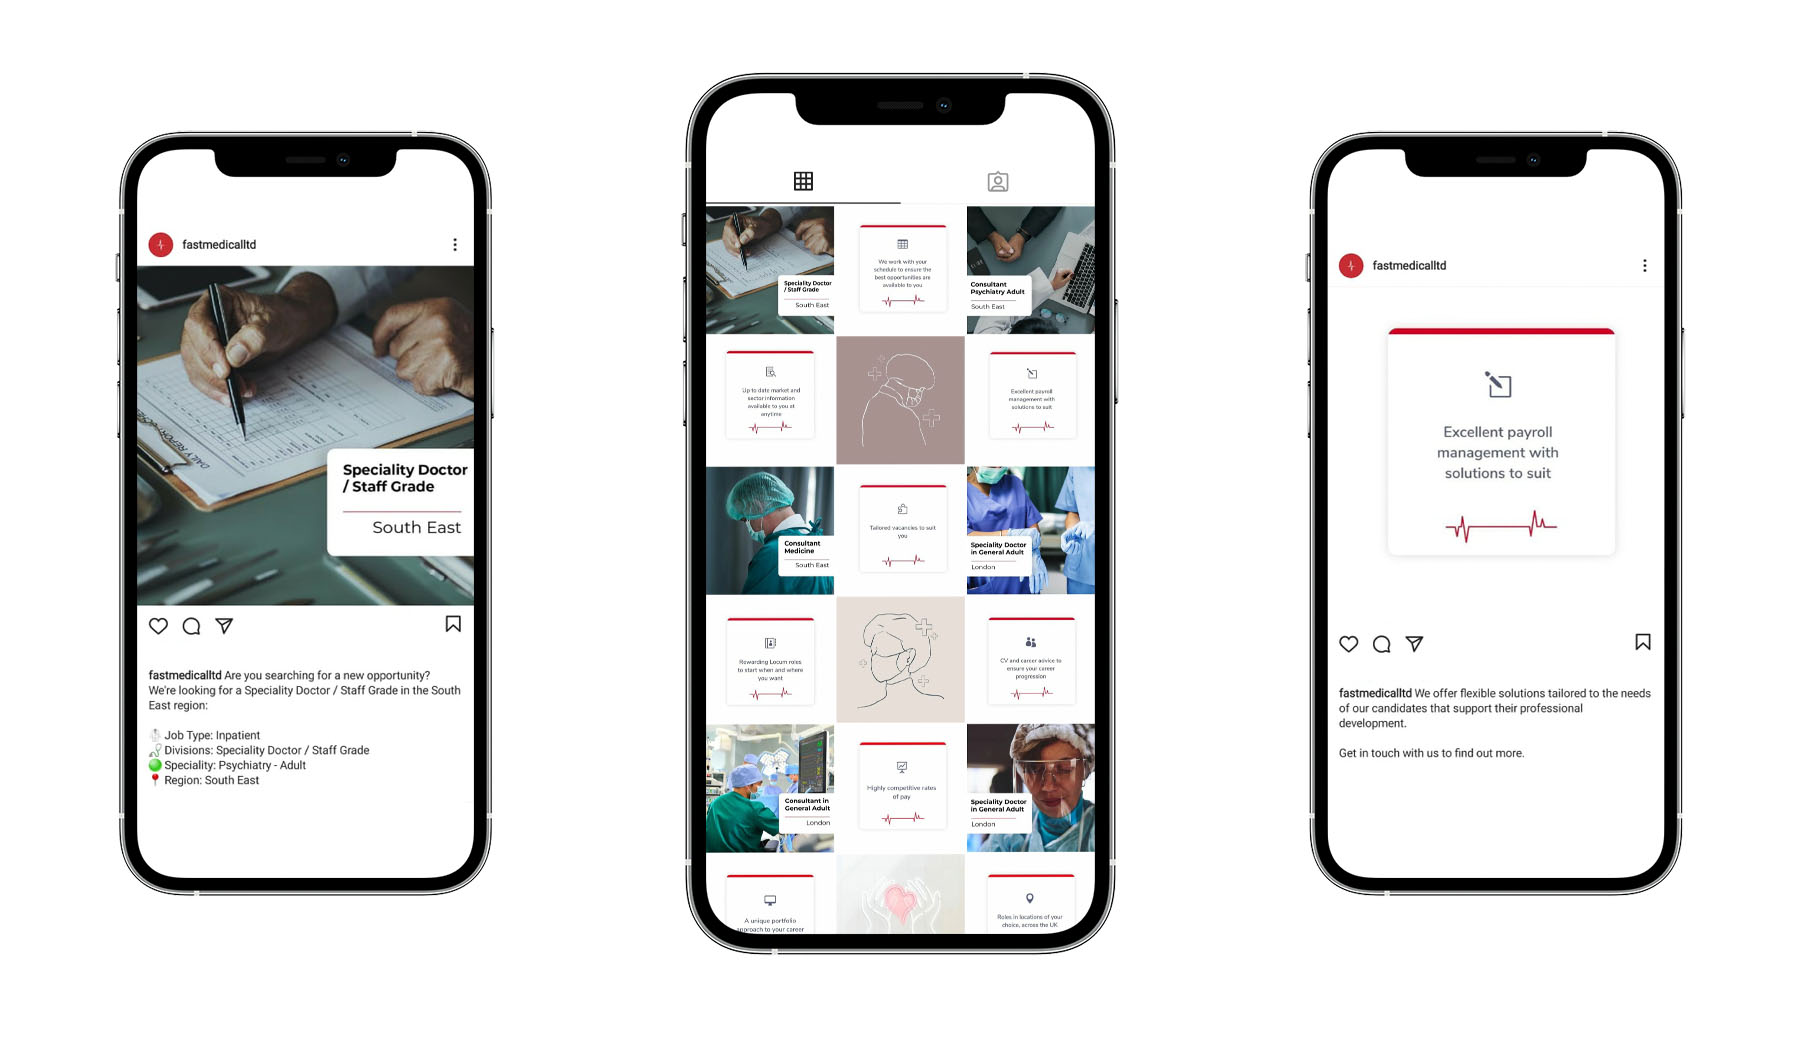 the atom lab Fast Medical social media feed instagram